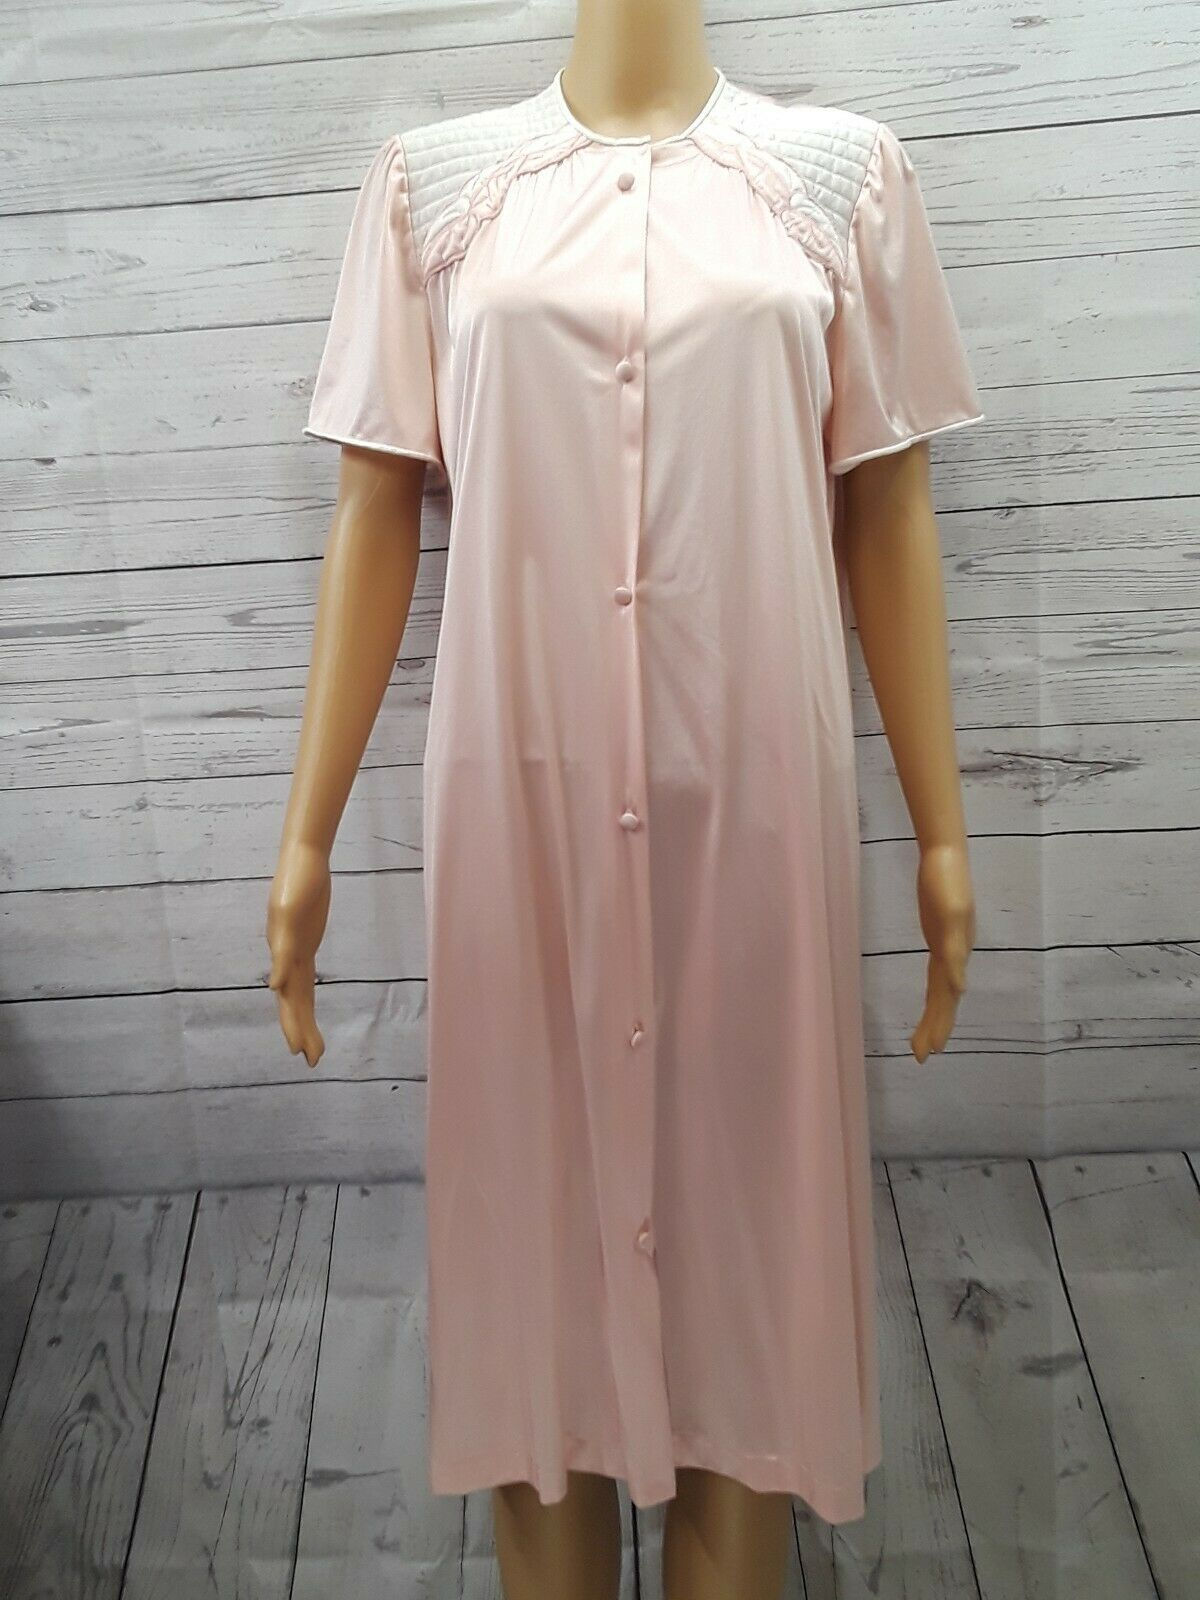 Vtg Vanity Fair Light Pink Front Button Short Sleeve Nightgown Made in USA Sz M